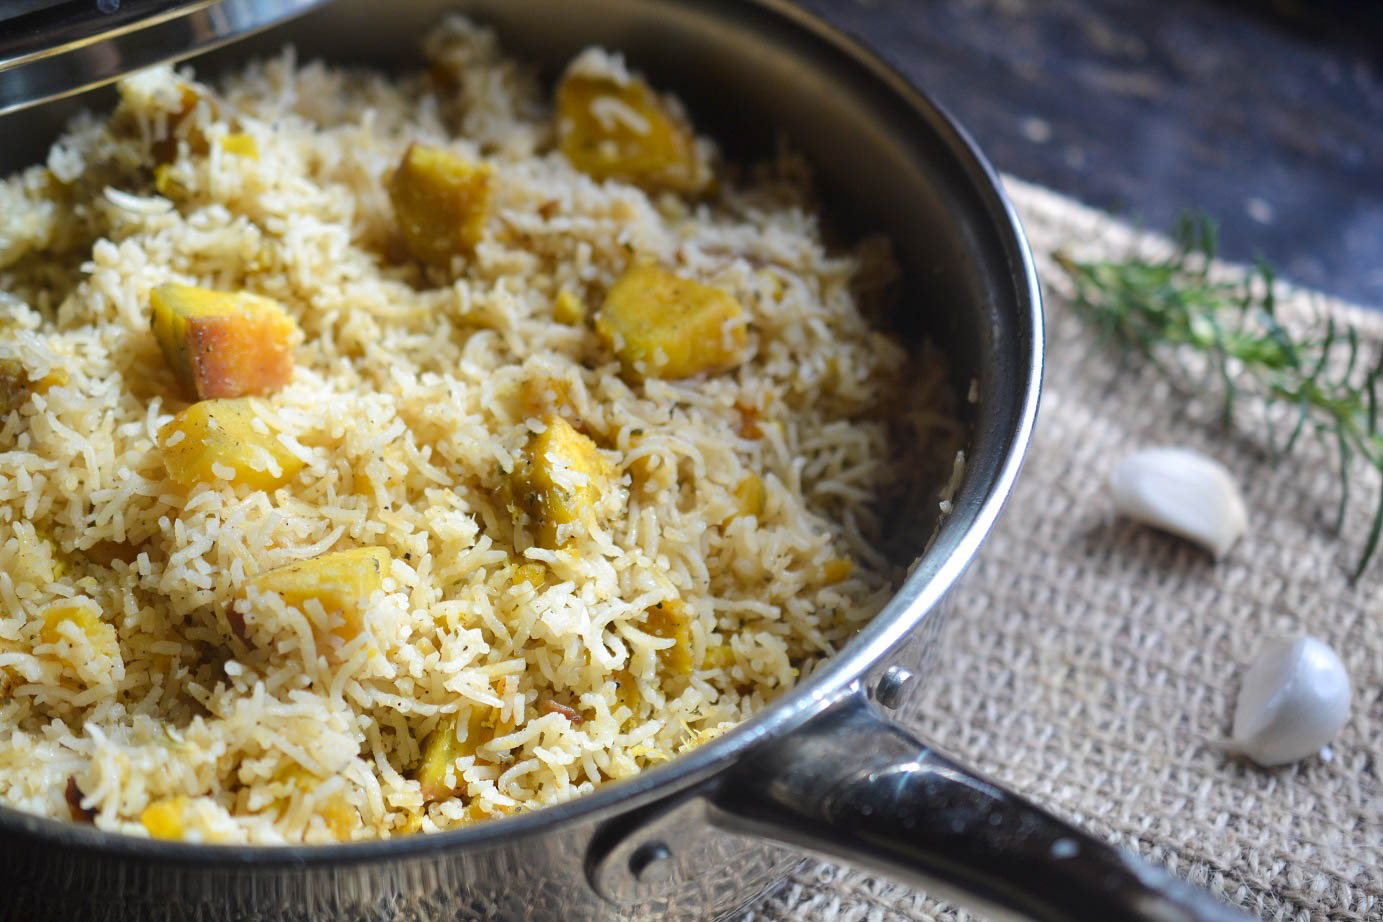 Forum on this topic: Noor Jehan, rosemary-rice/